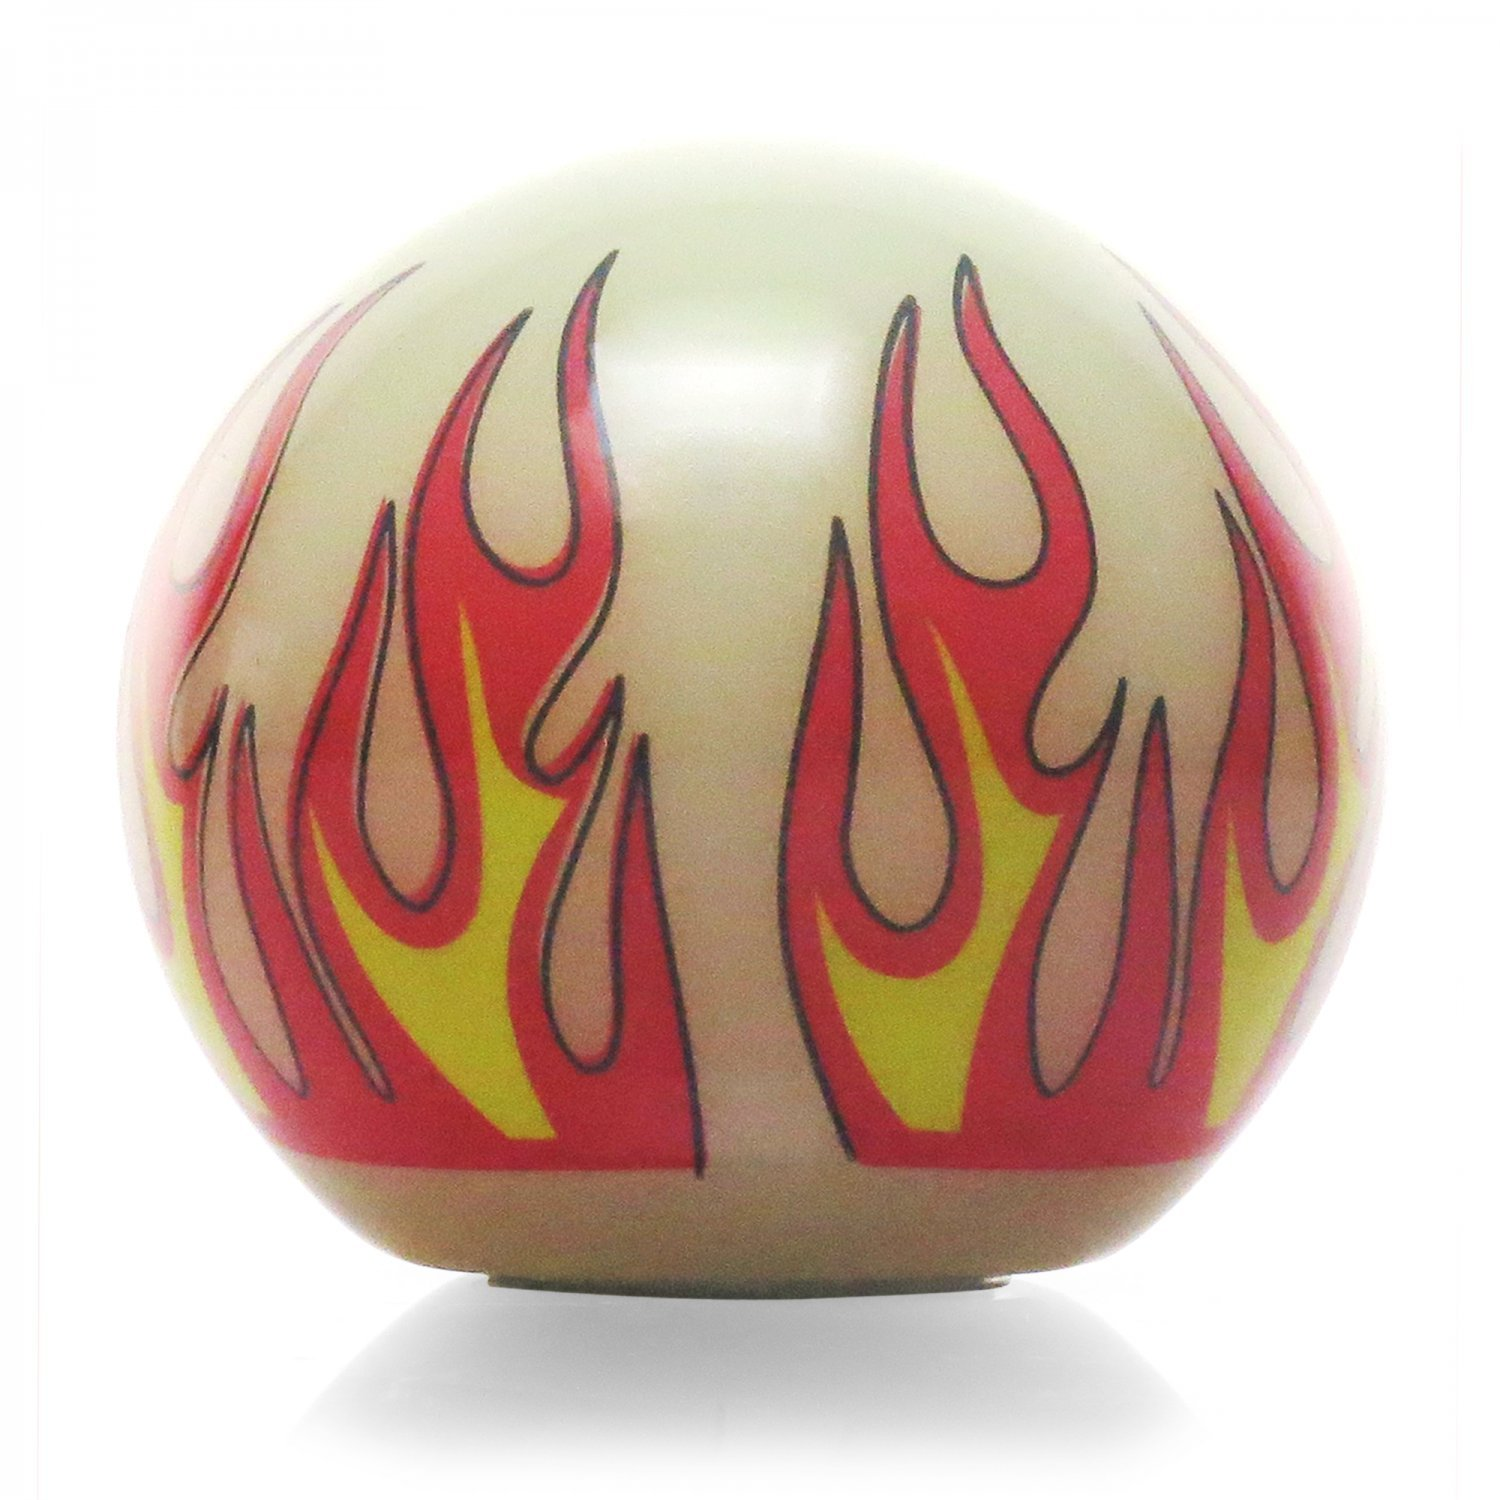 American Shifter 293845 Shift Knob Yellow High Speed Ivory Flame with M16 x 1.5 Insert